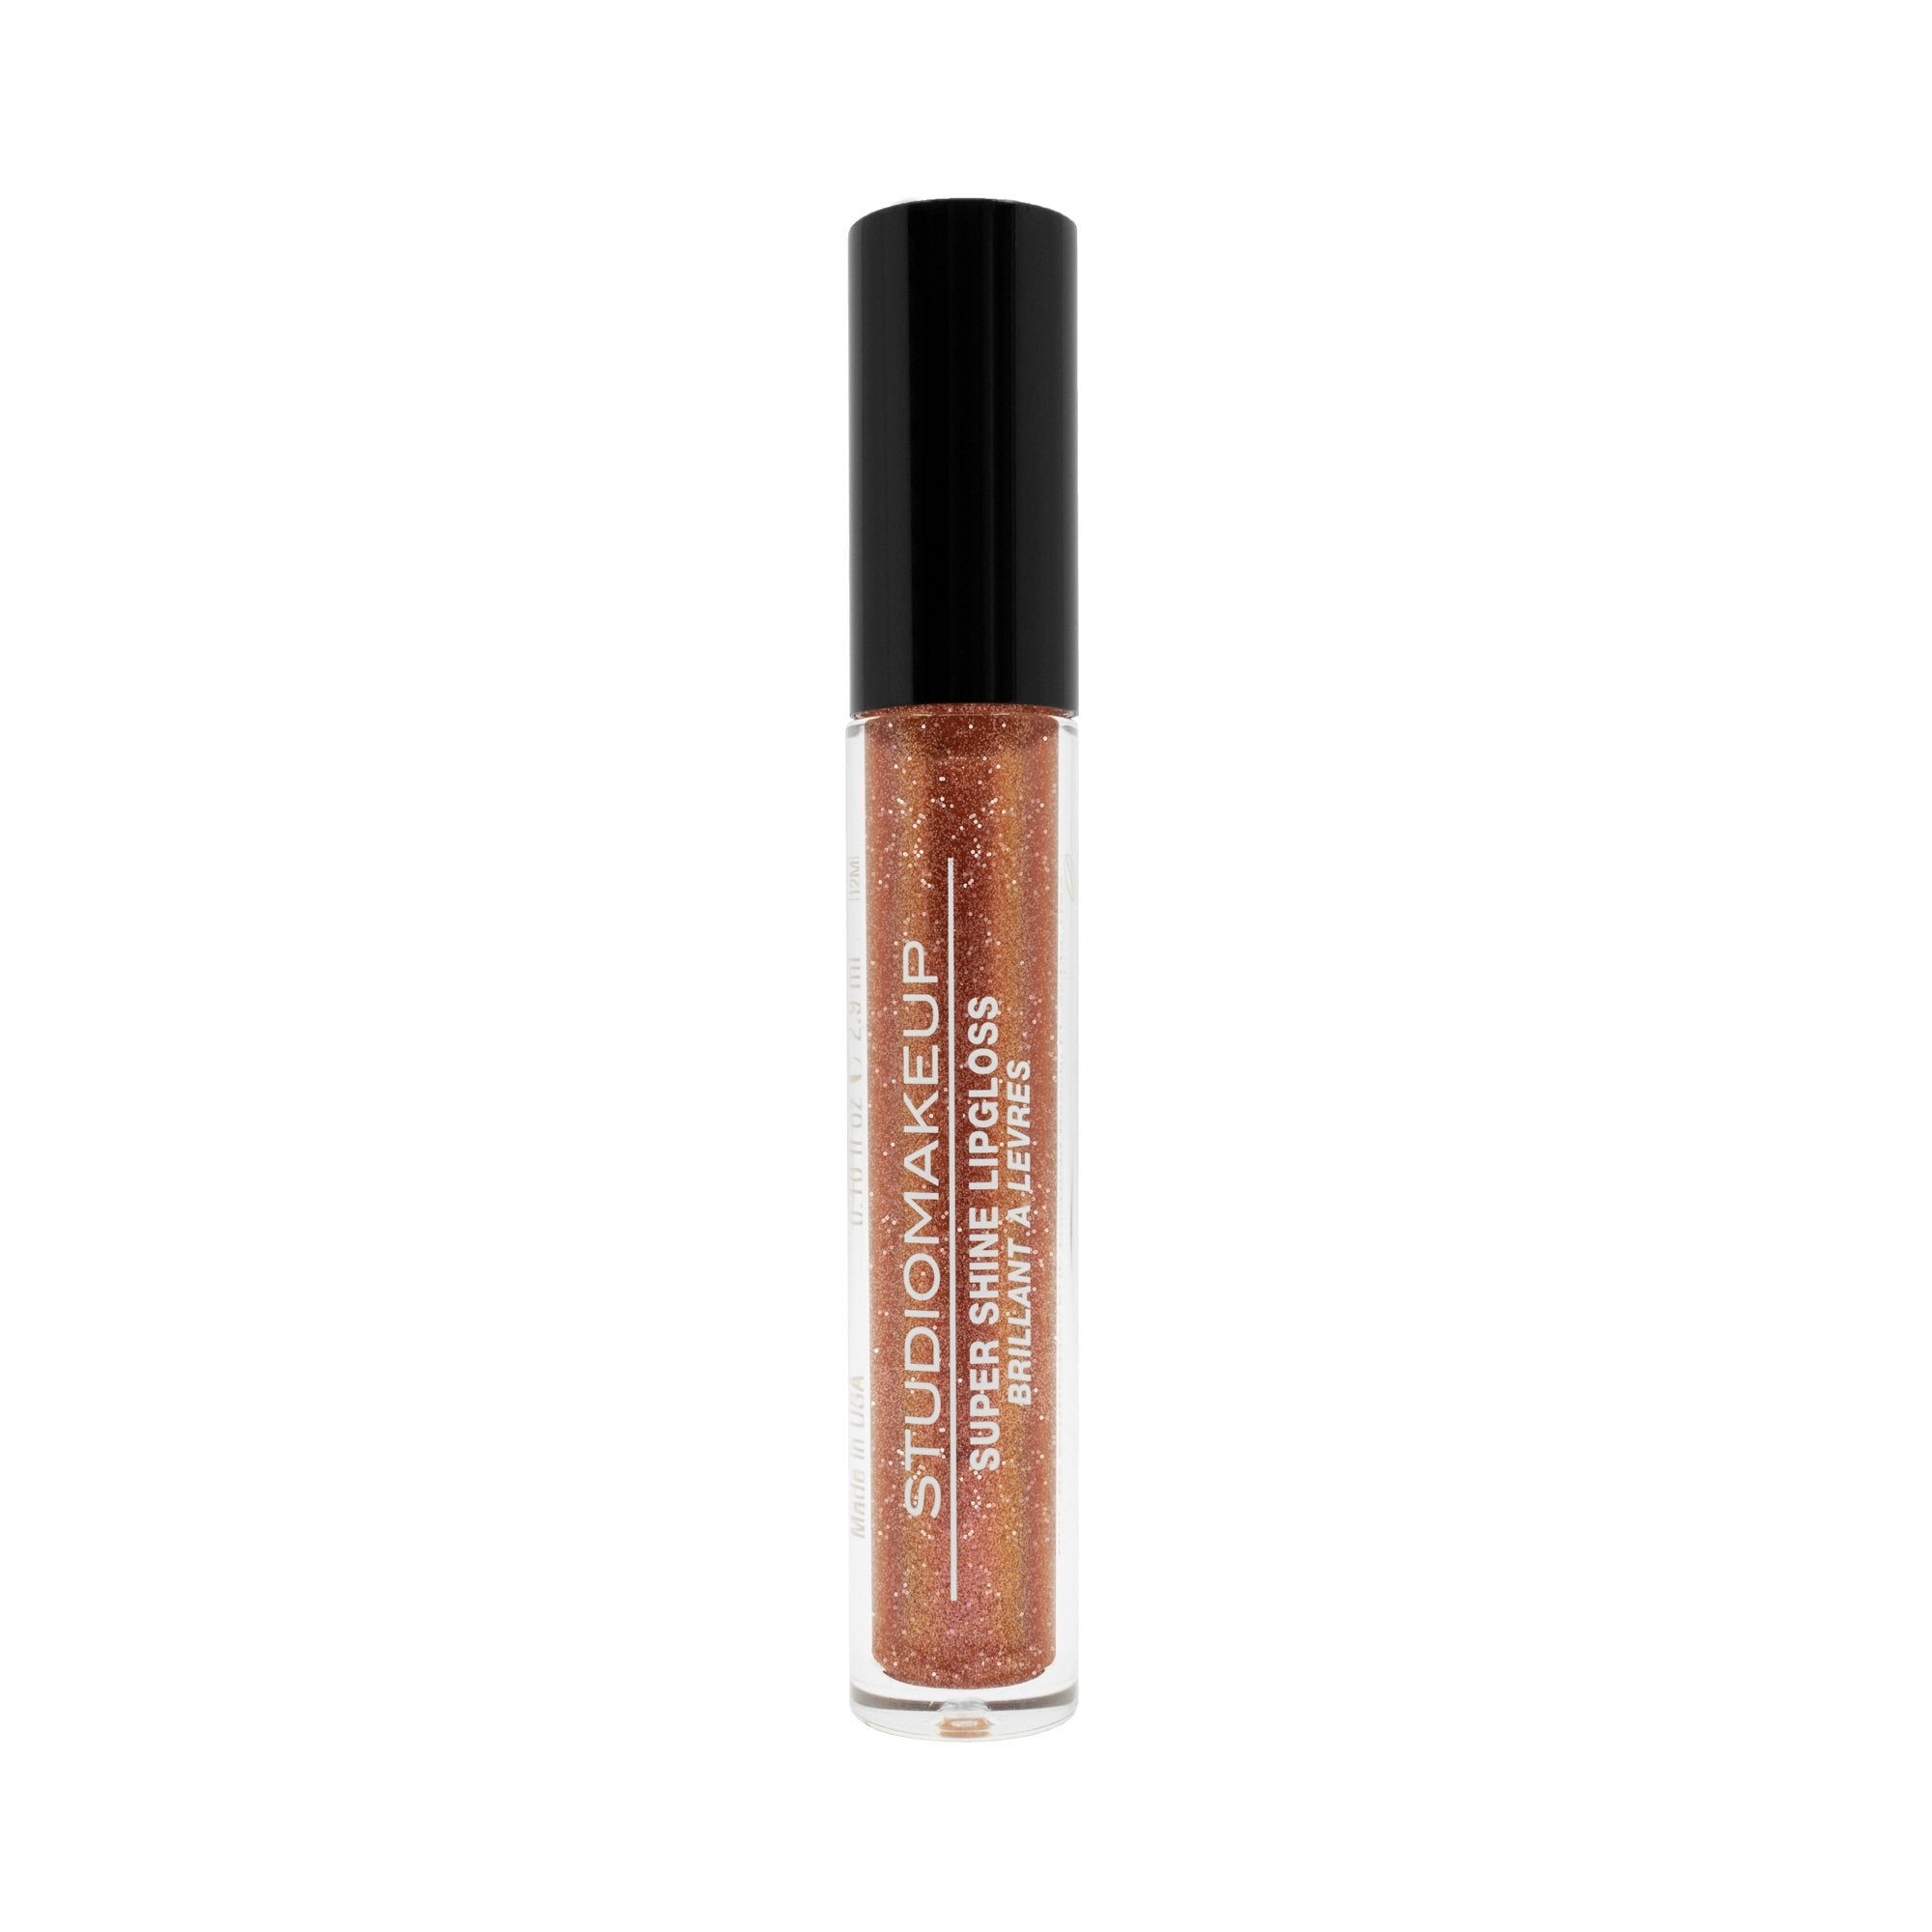 SUPERSHINE GLITTER GLOSS